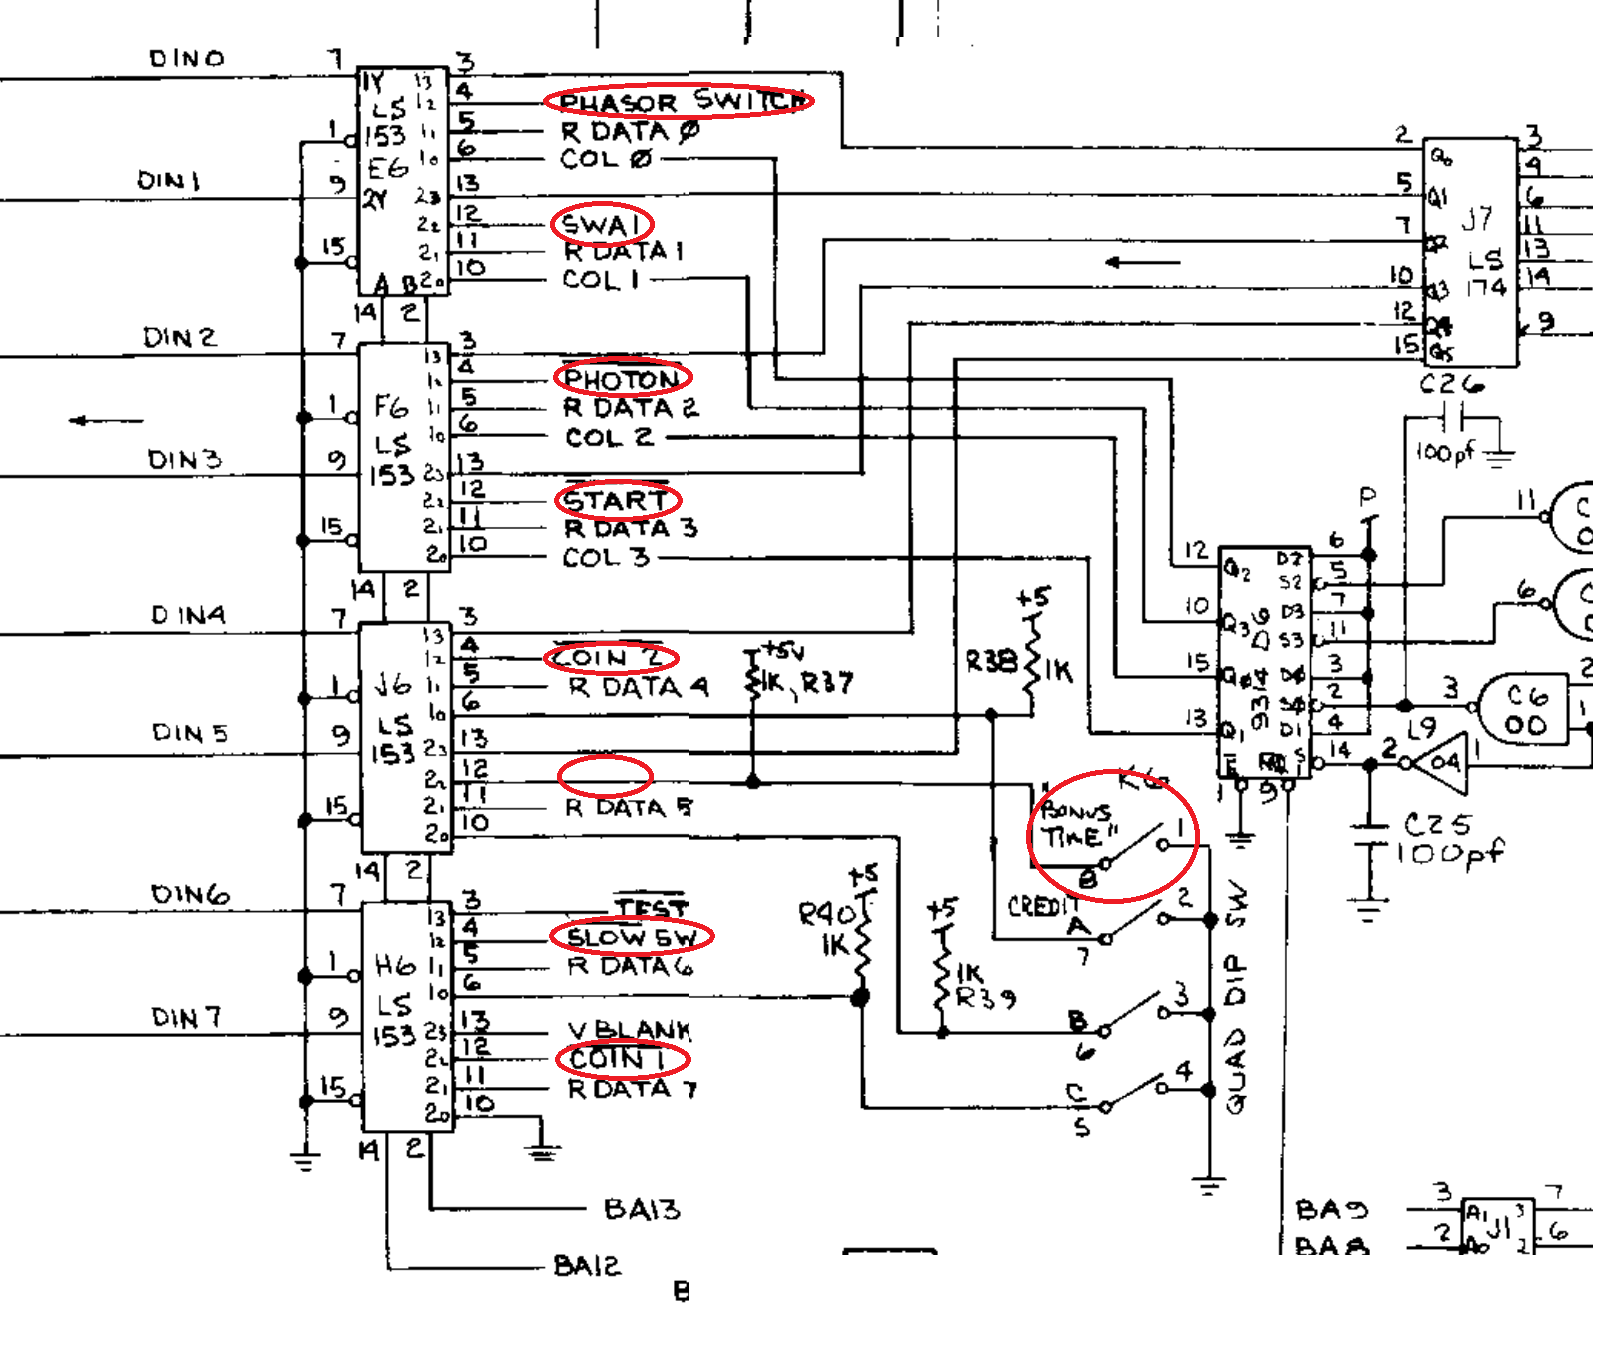 Llv Wiring Diagram 88 - Gota Wiring Diagram •gota wiring diagram